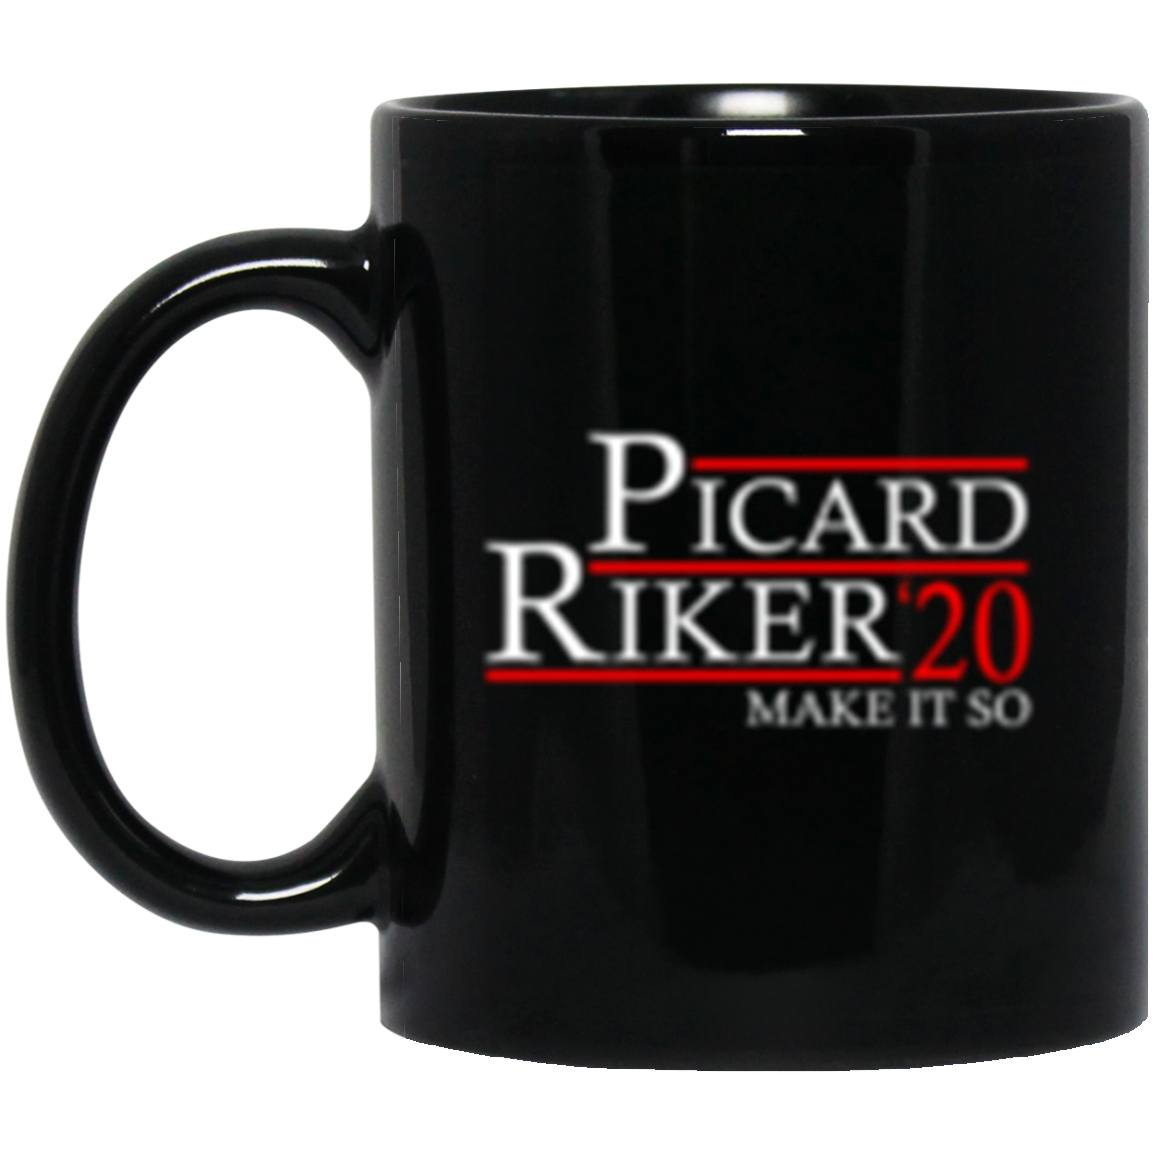 Drinkware - Picard Riker 2020 Mug 11oz (2-sided)